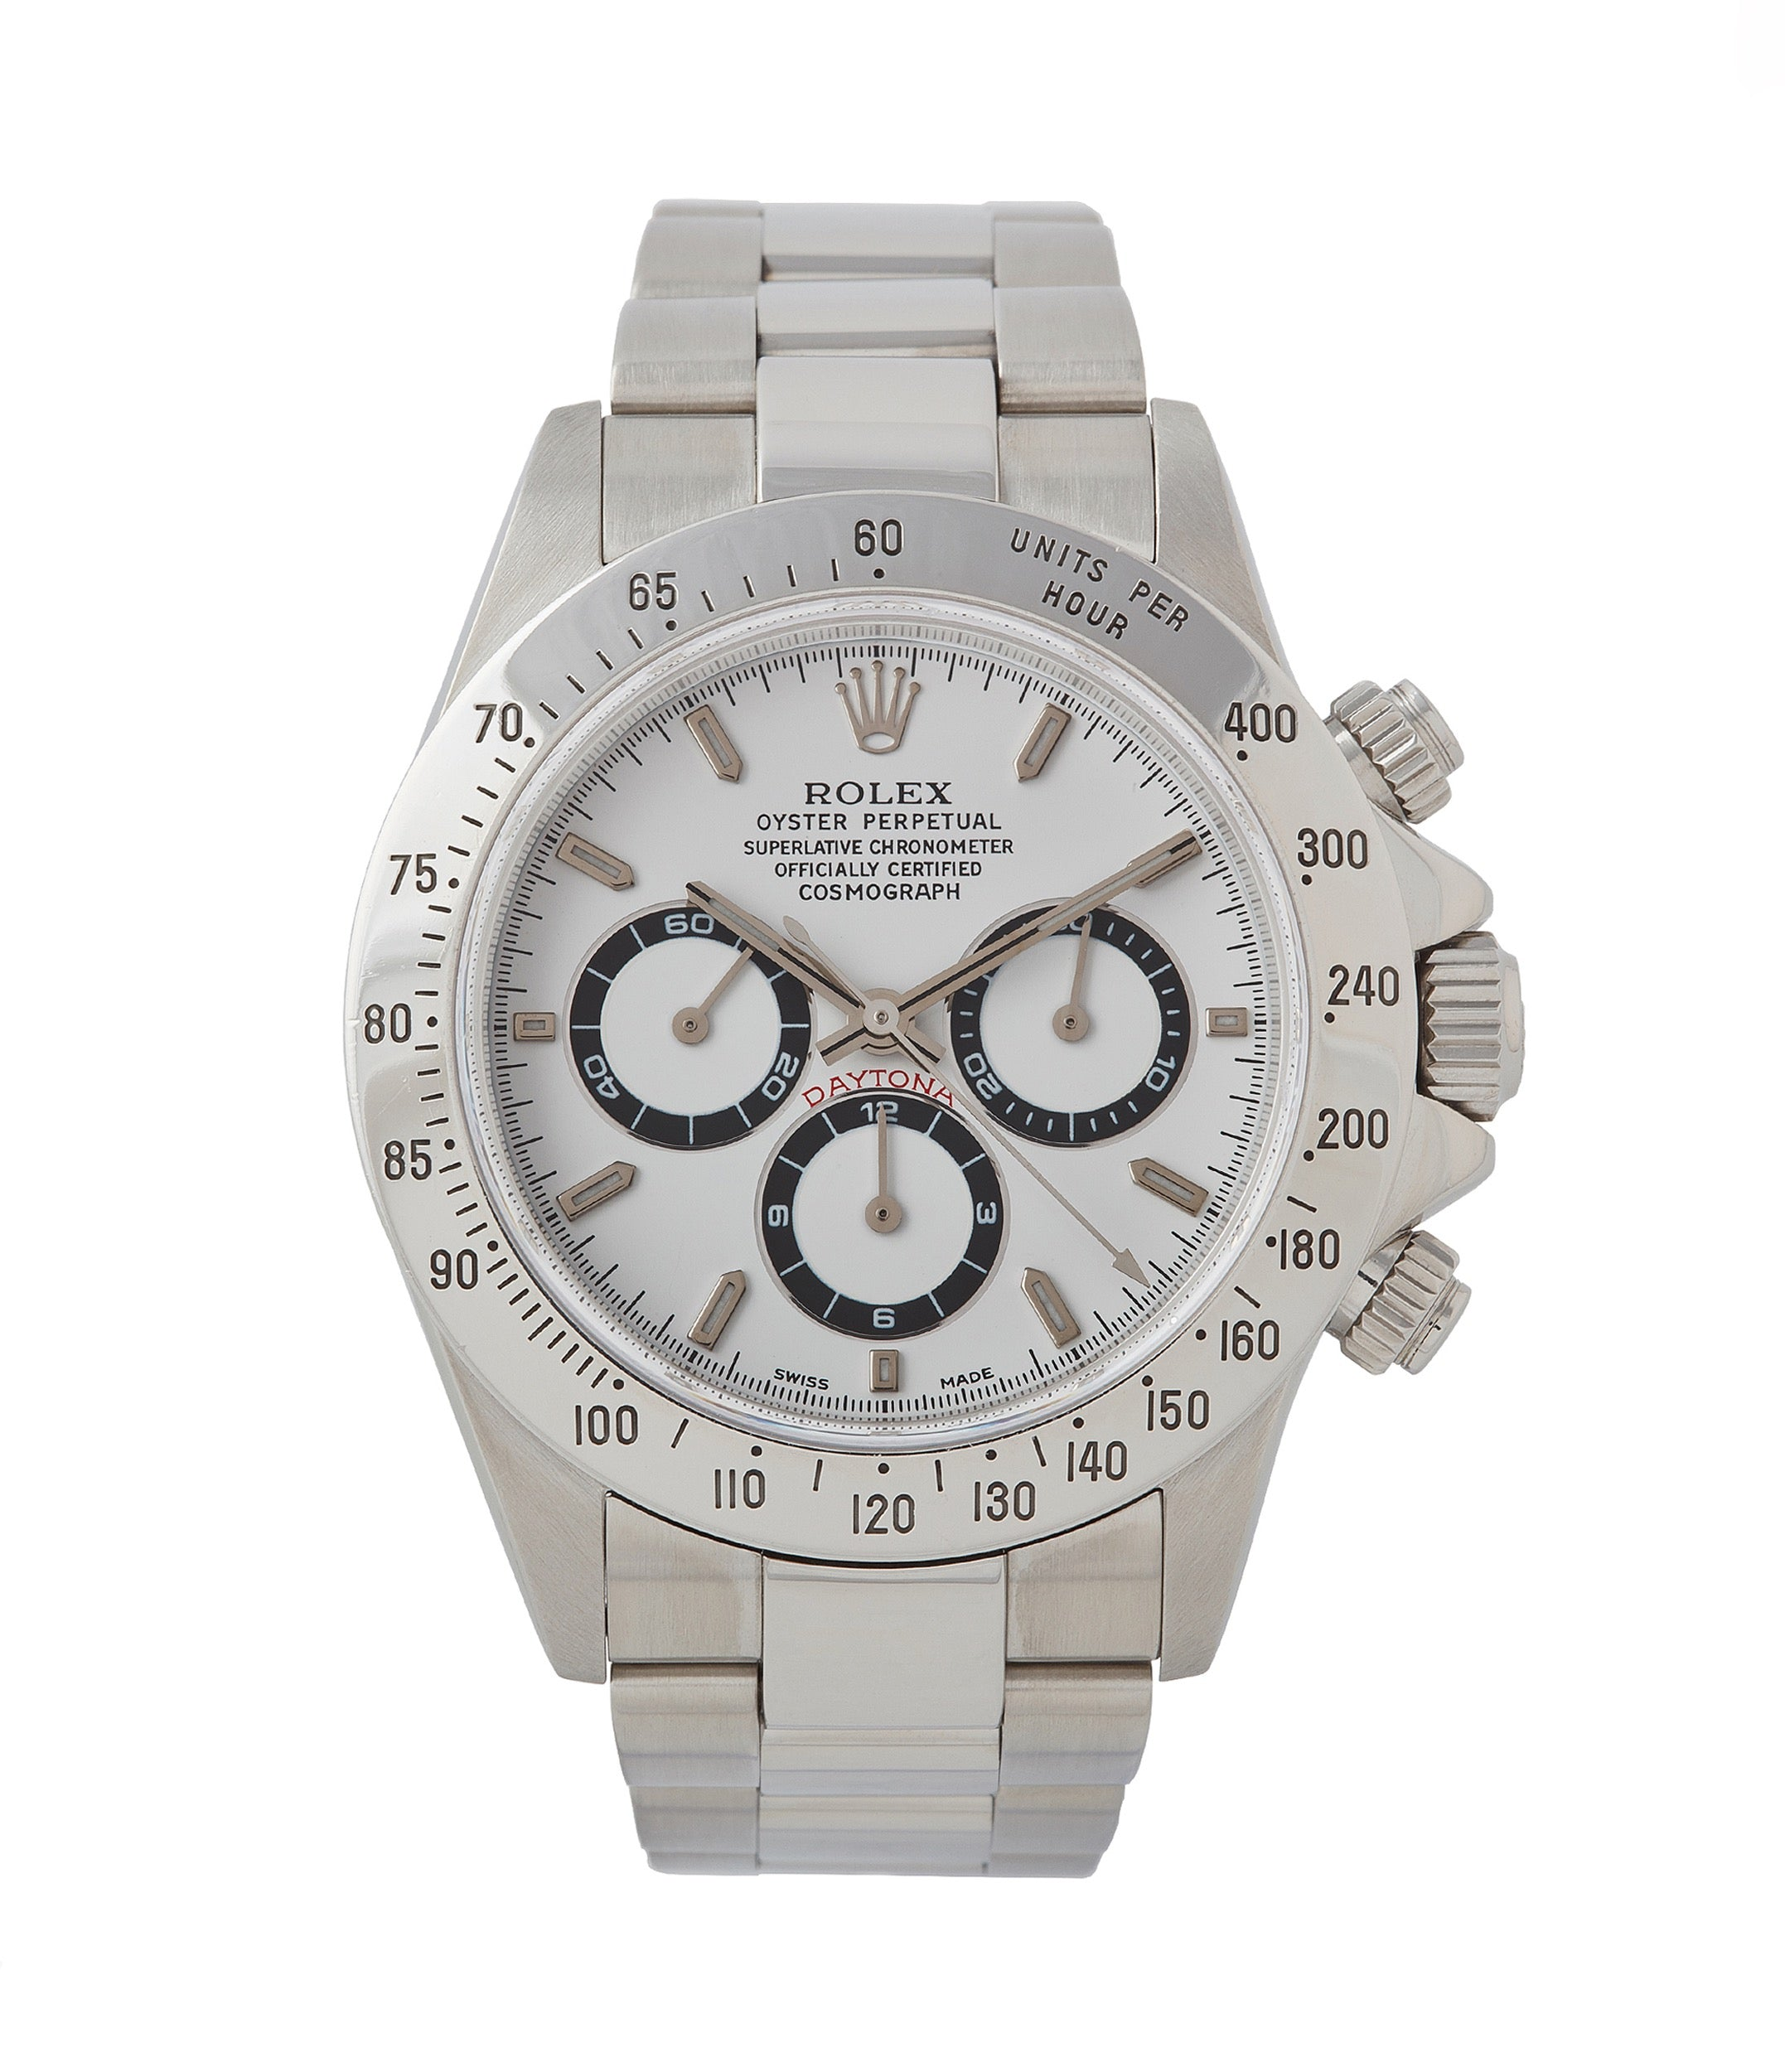 buy Rolex Daytona 16520 Zenith steel vintage chronograph sports watch full set for sale online A Collected Man London specialist rare watches